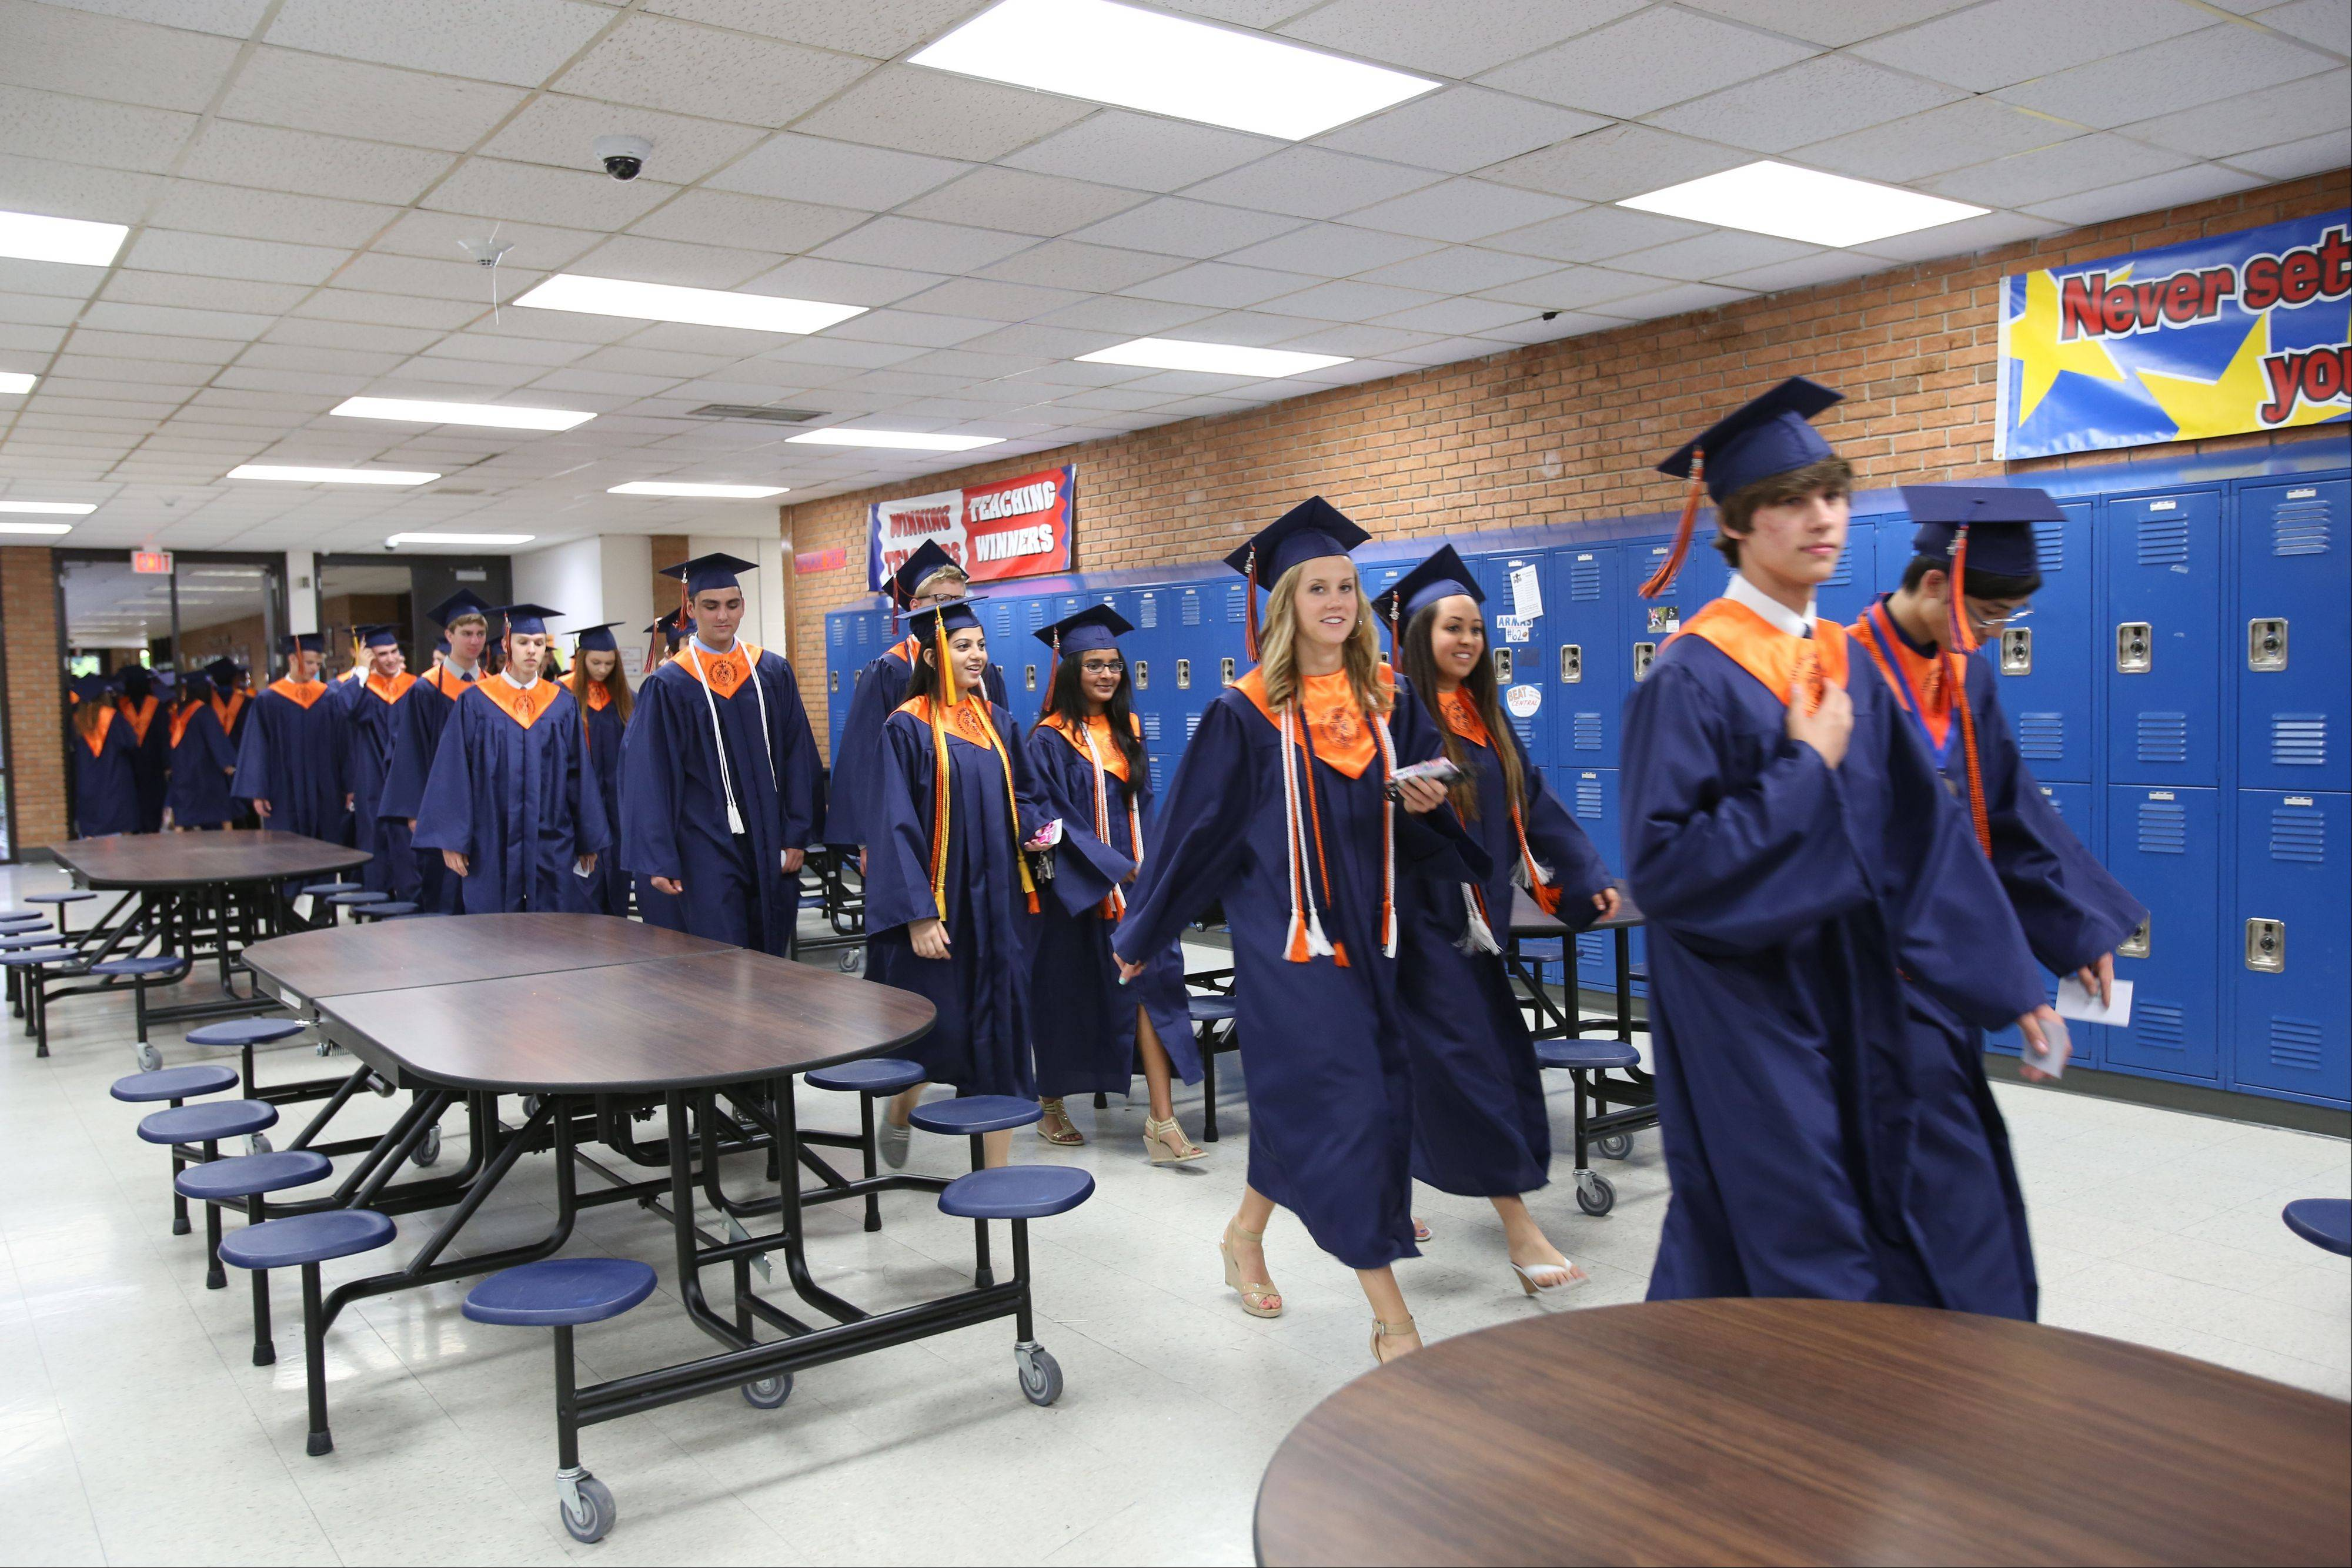 Images from the Naperville North High School graduation on Monday, May 20 in Naperville.